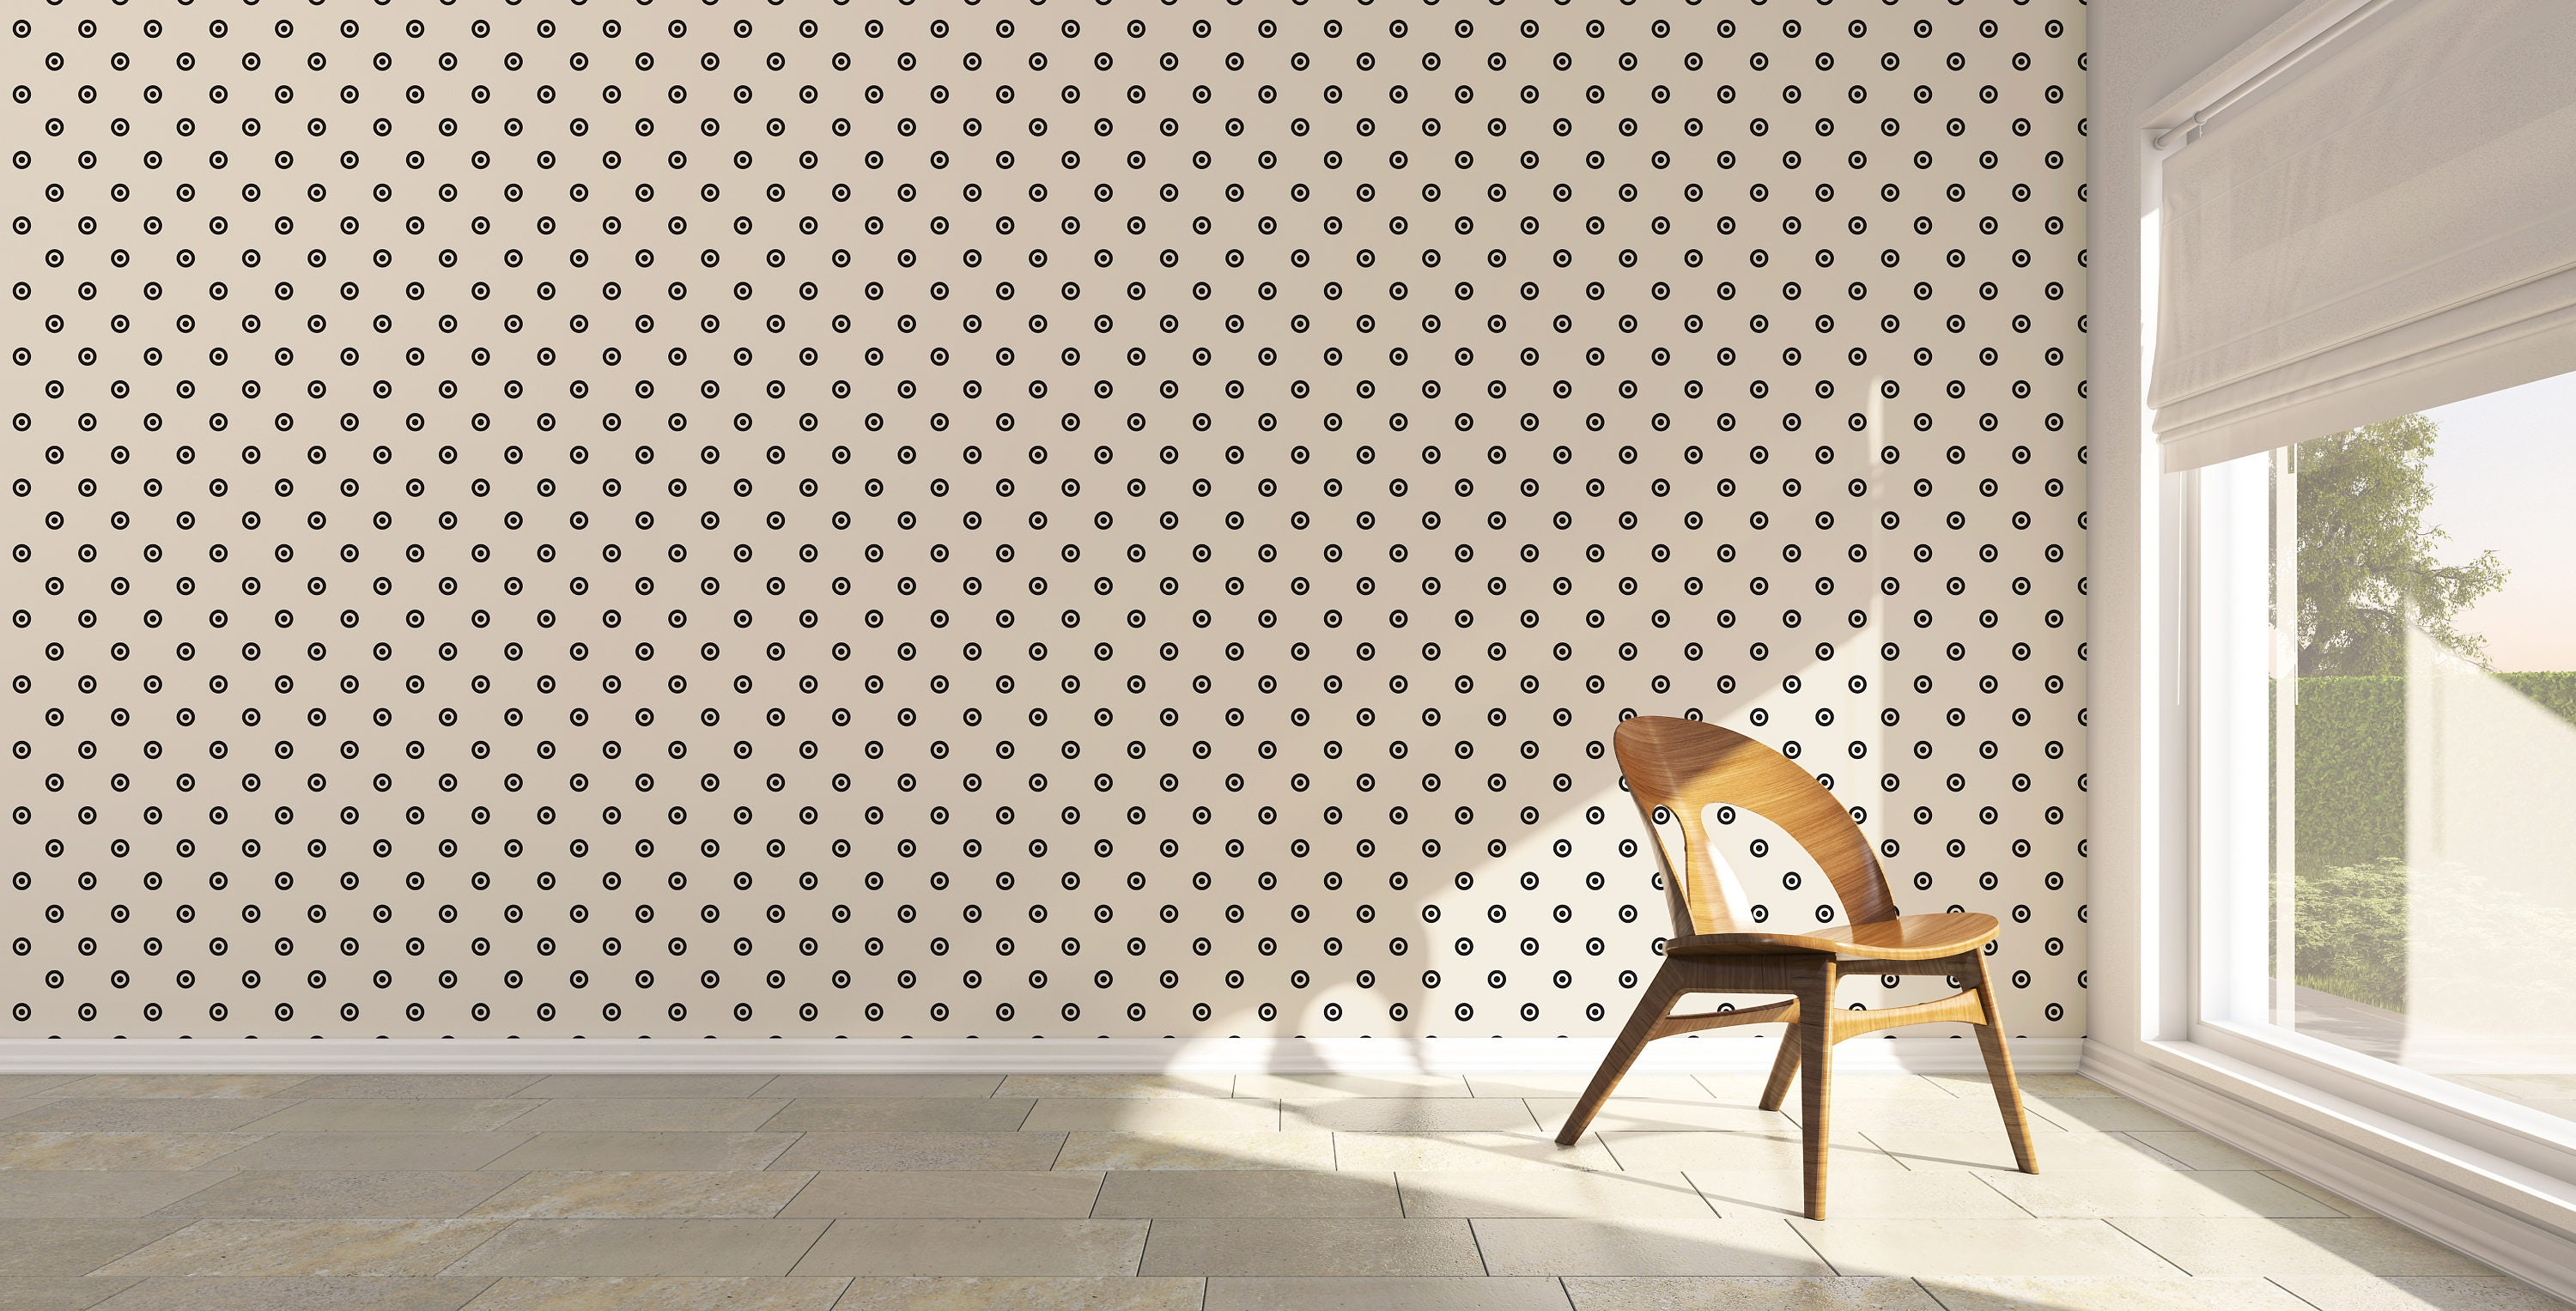 Removable wallpaper scandinavian wallpaper temporary Scandinavian wallpaper and decor